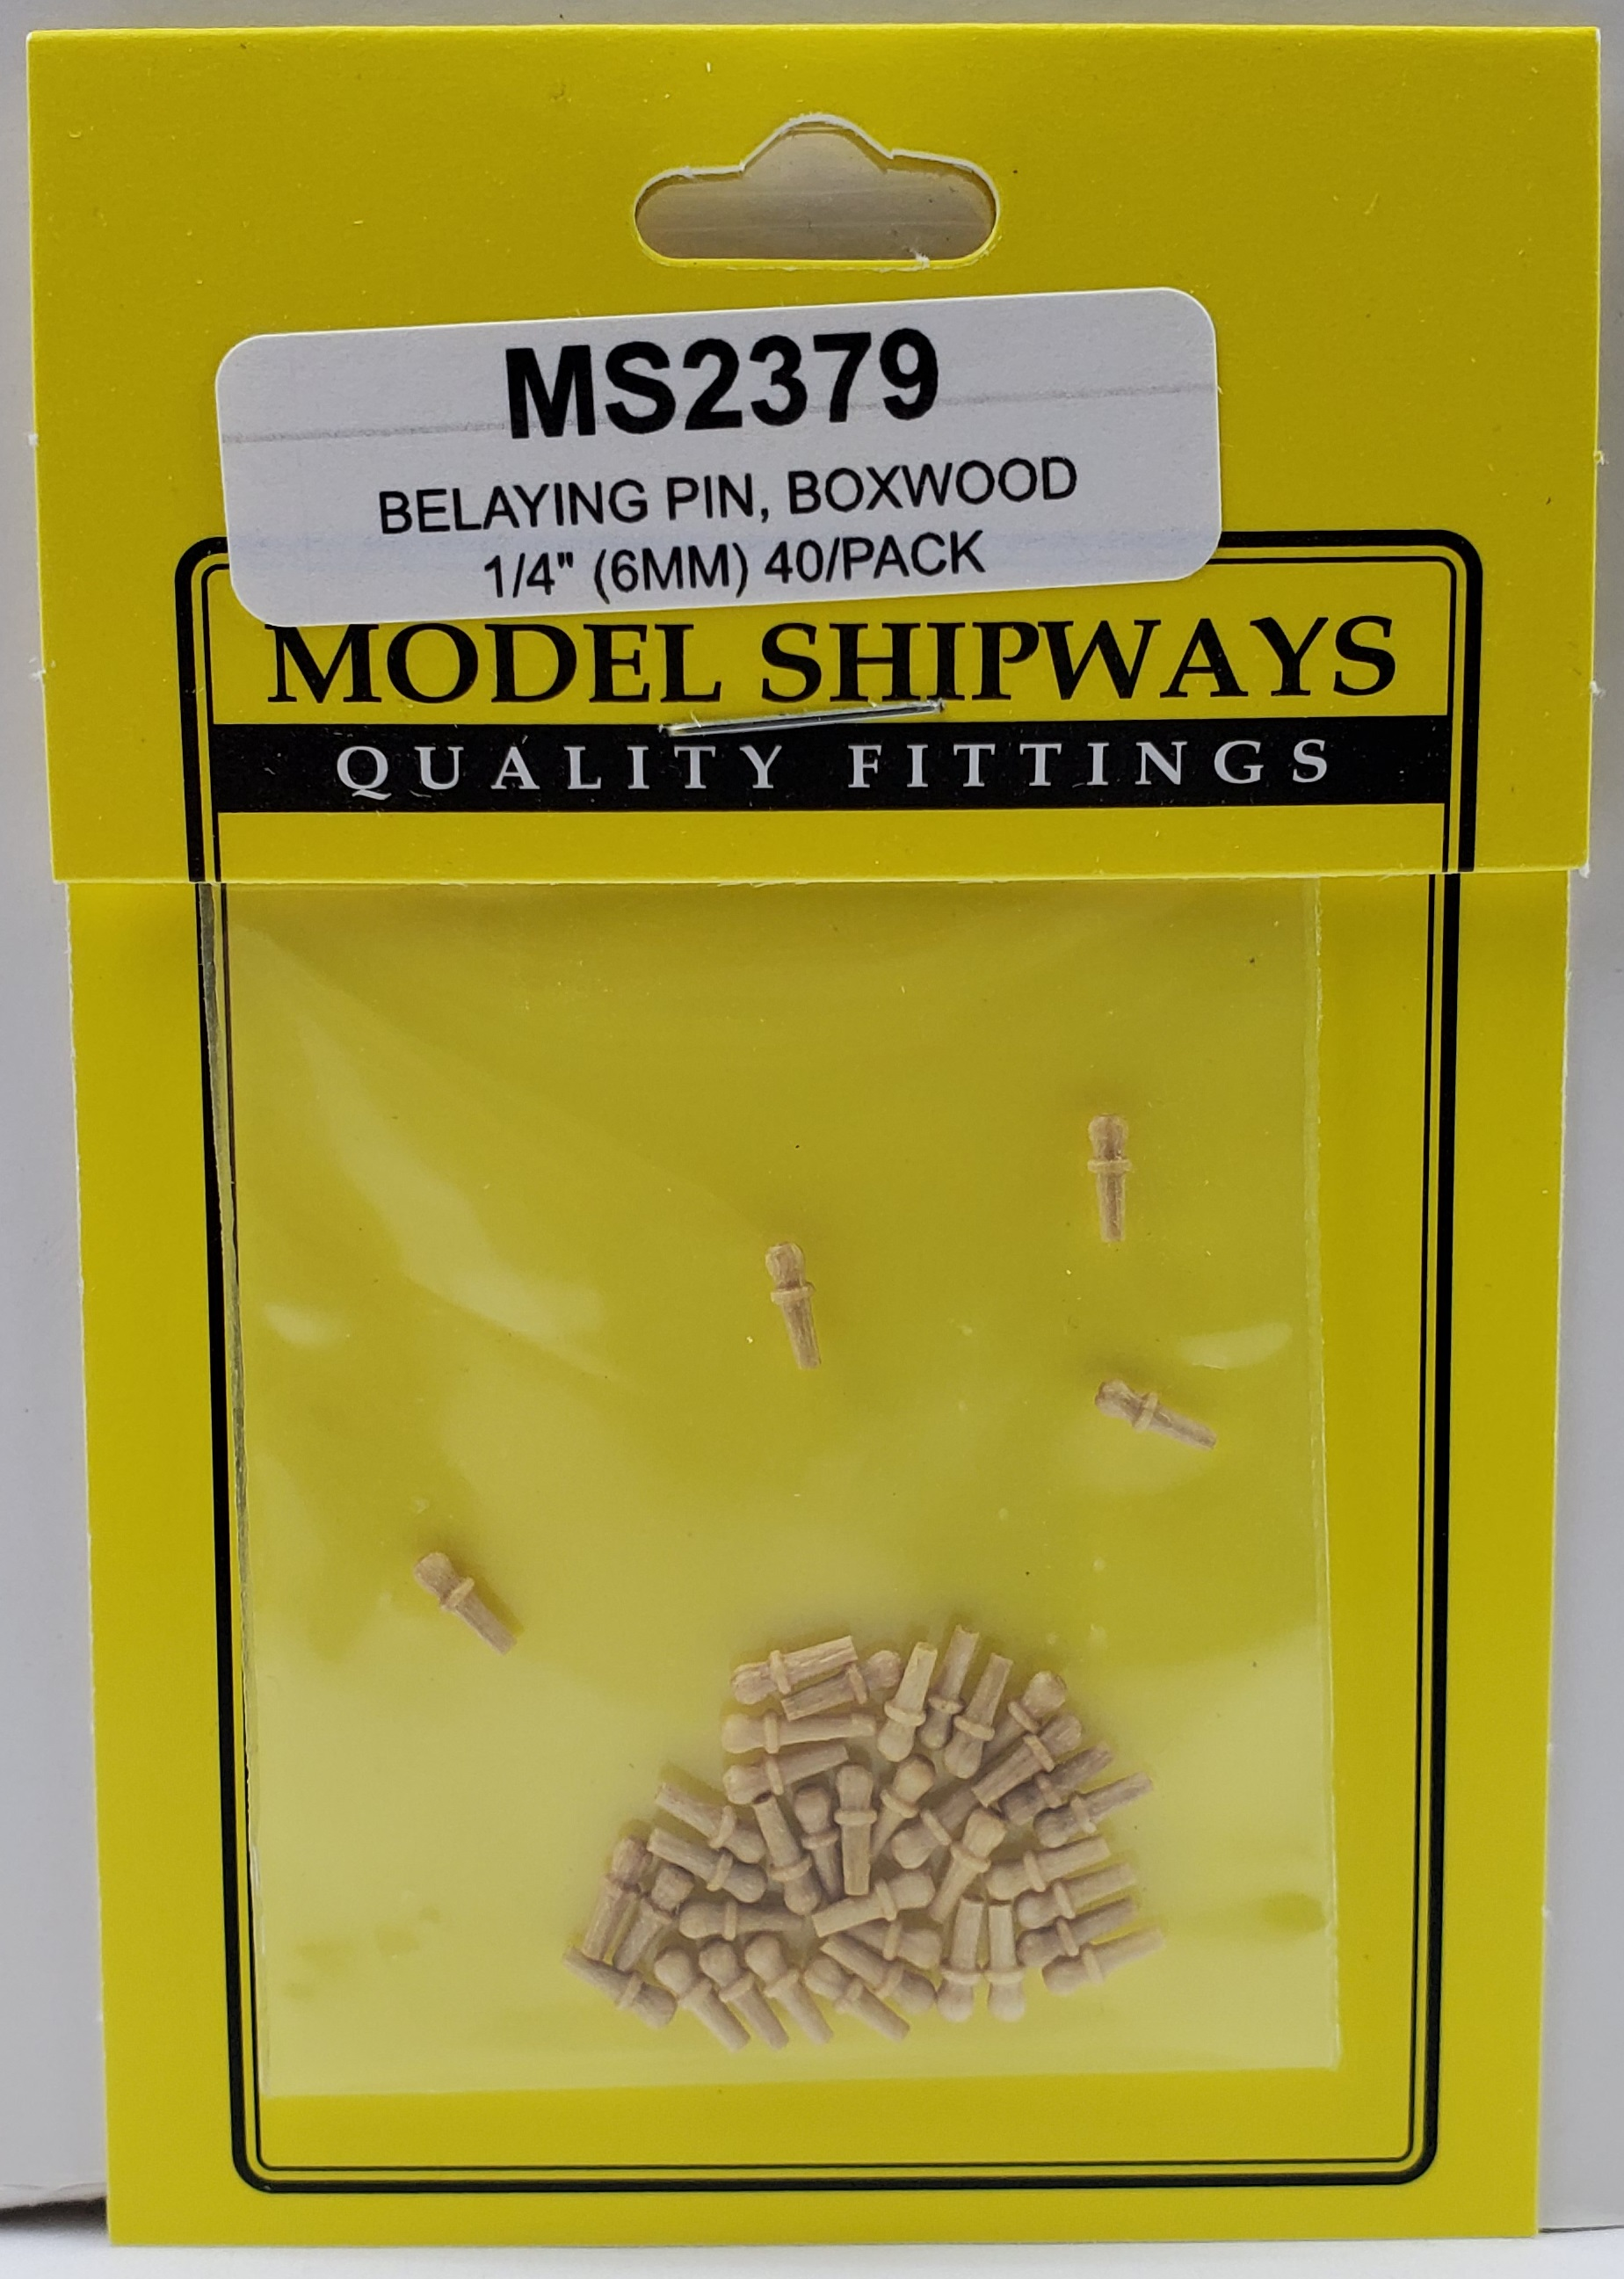 Model Shipways Belaying Pins, Boxwood 1/4